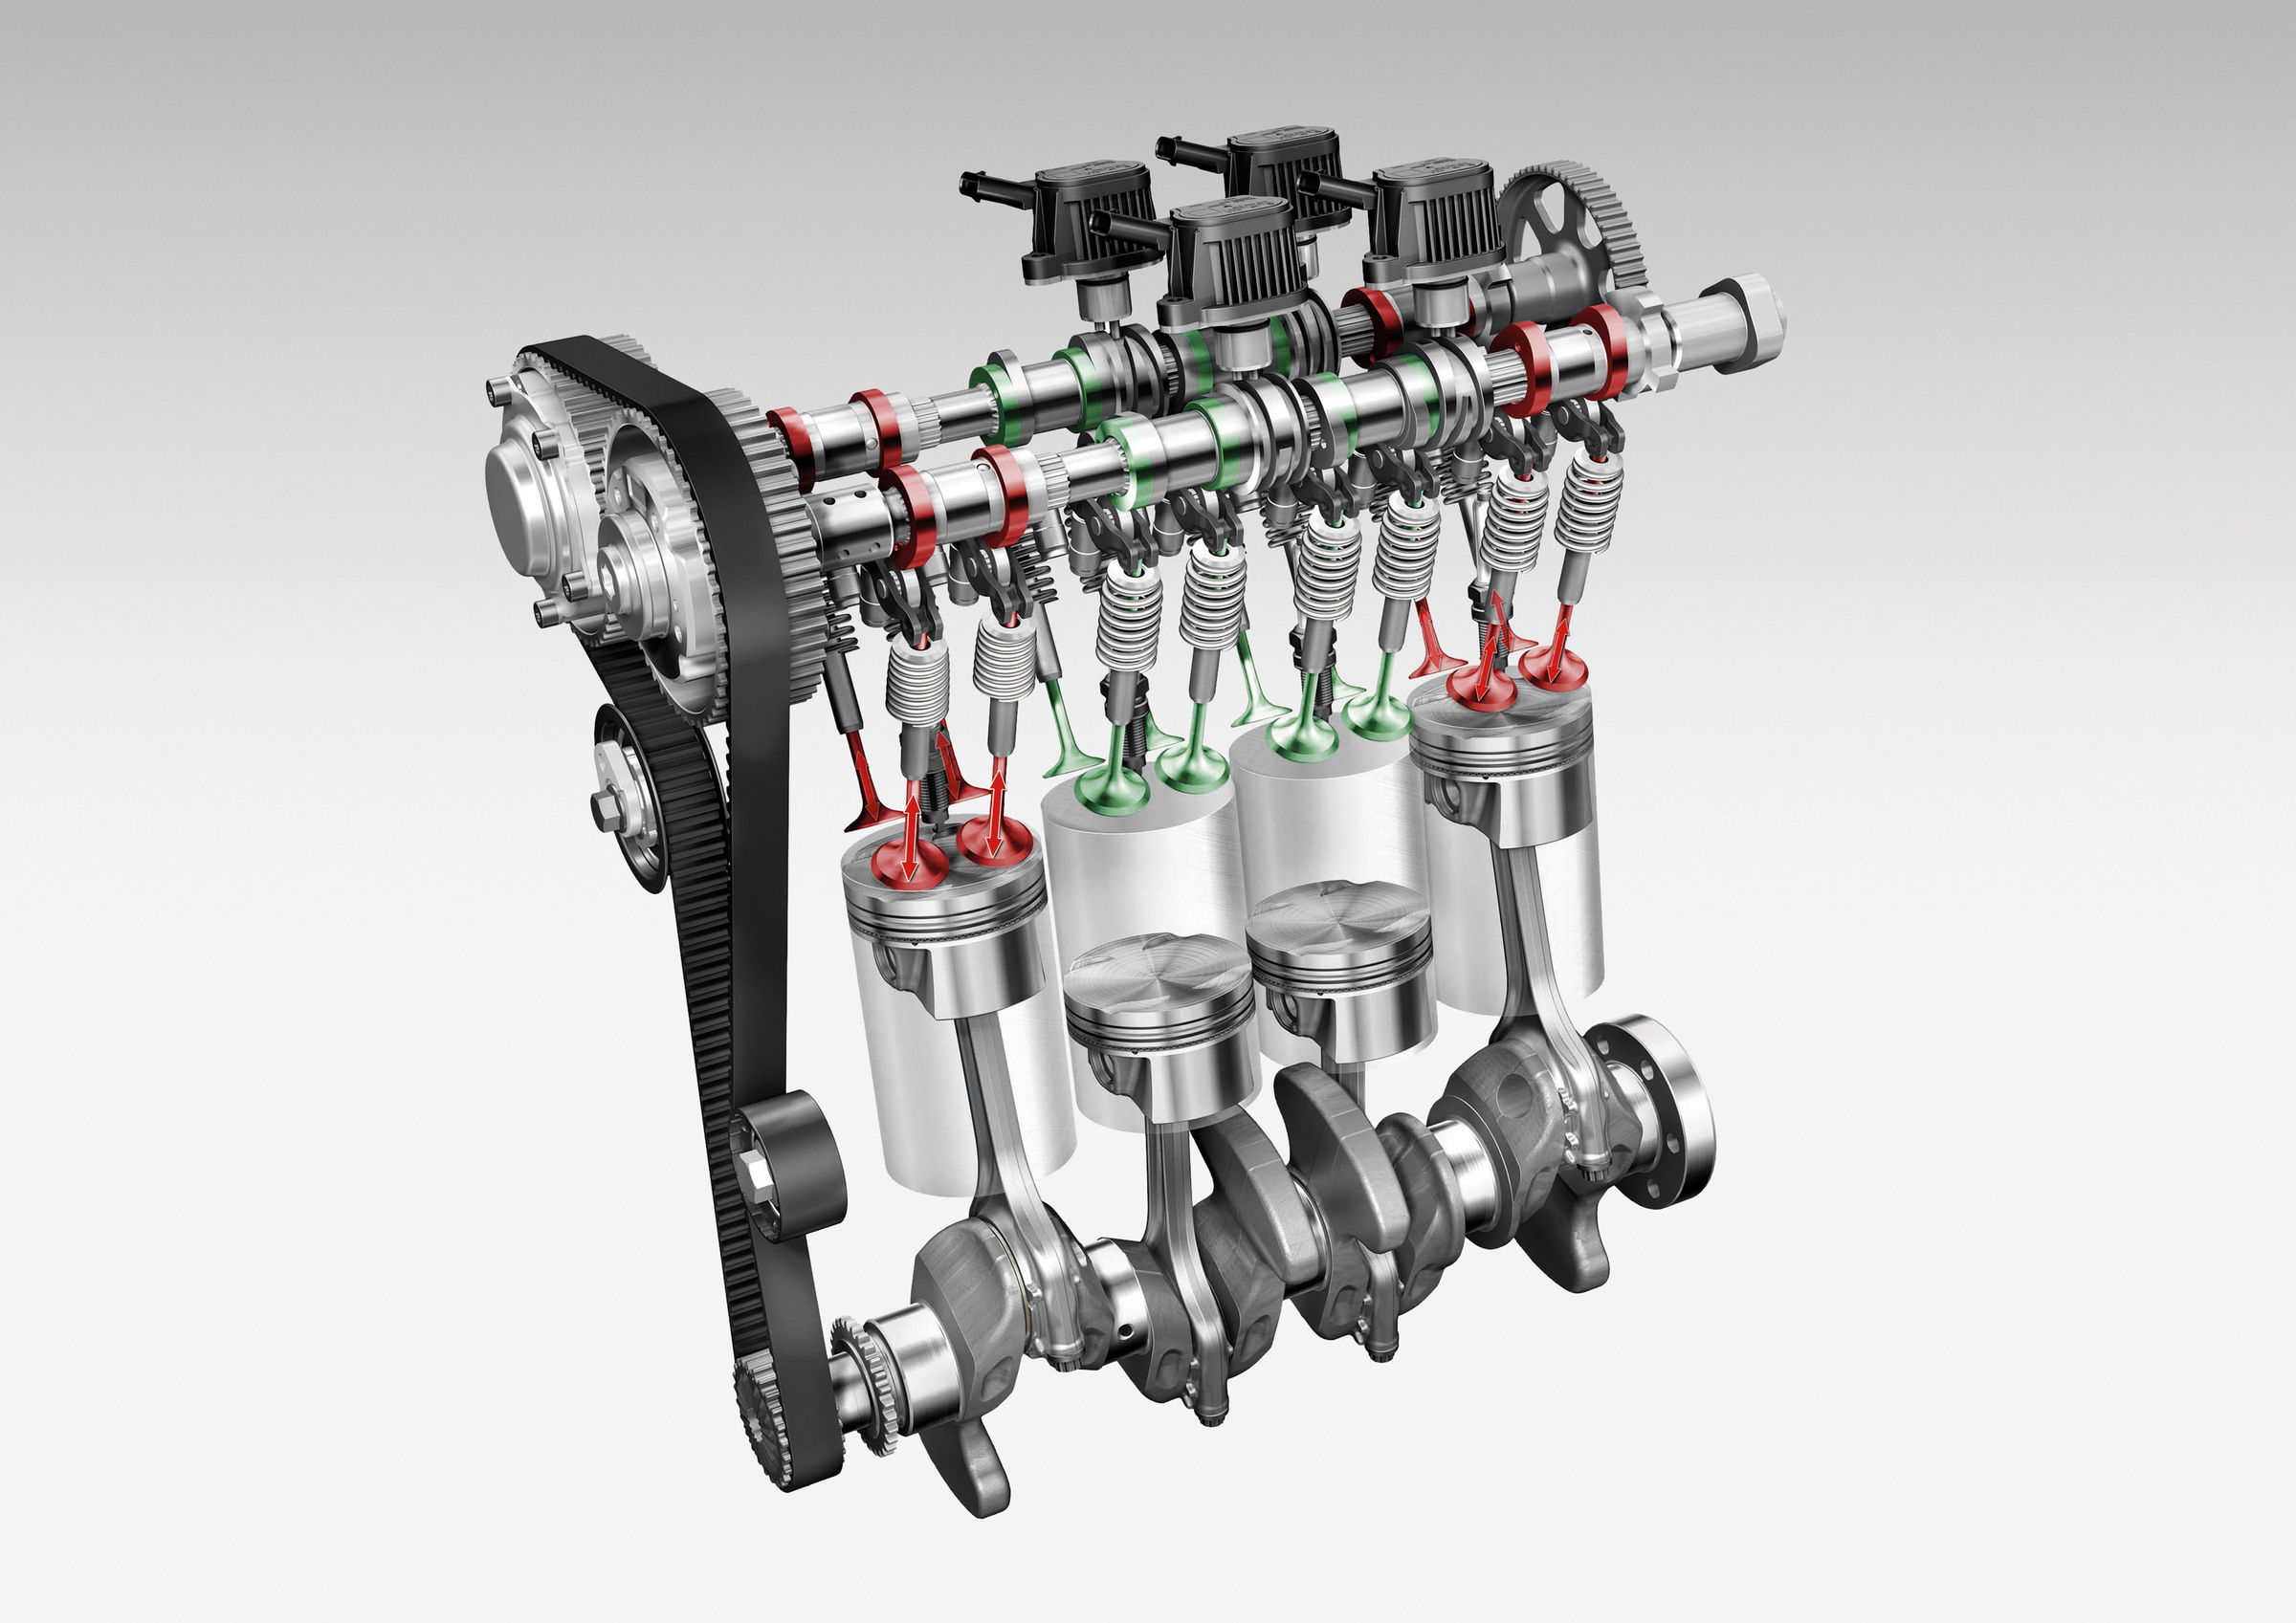 Drive System Audi Mediacenter Best Method For Controlling How A Motor Stops Maximizes Machine Cylinder On Demand